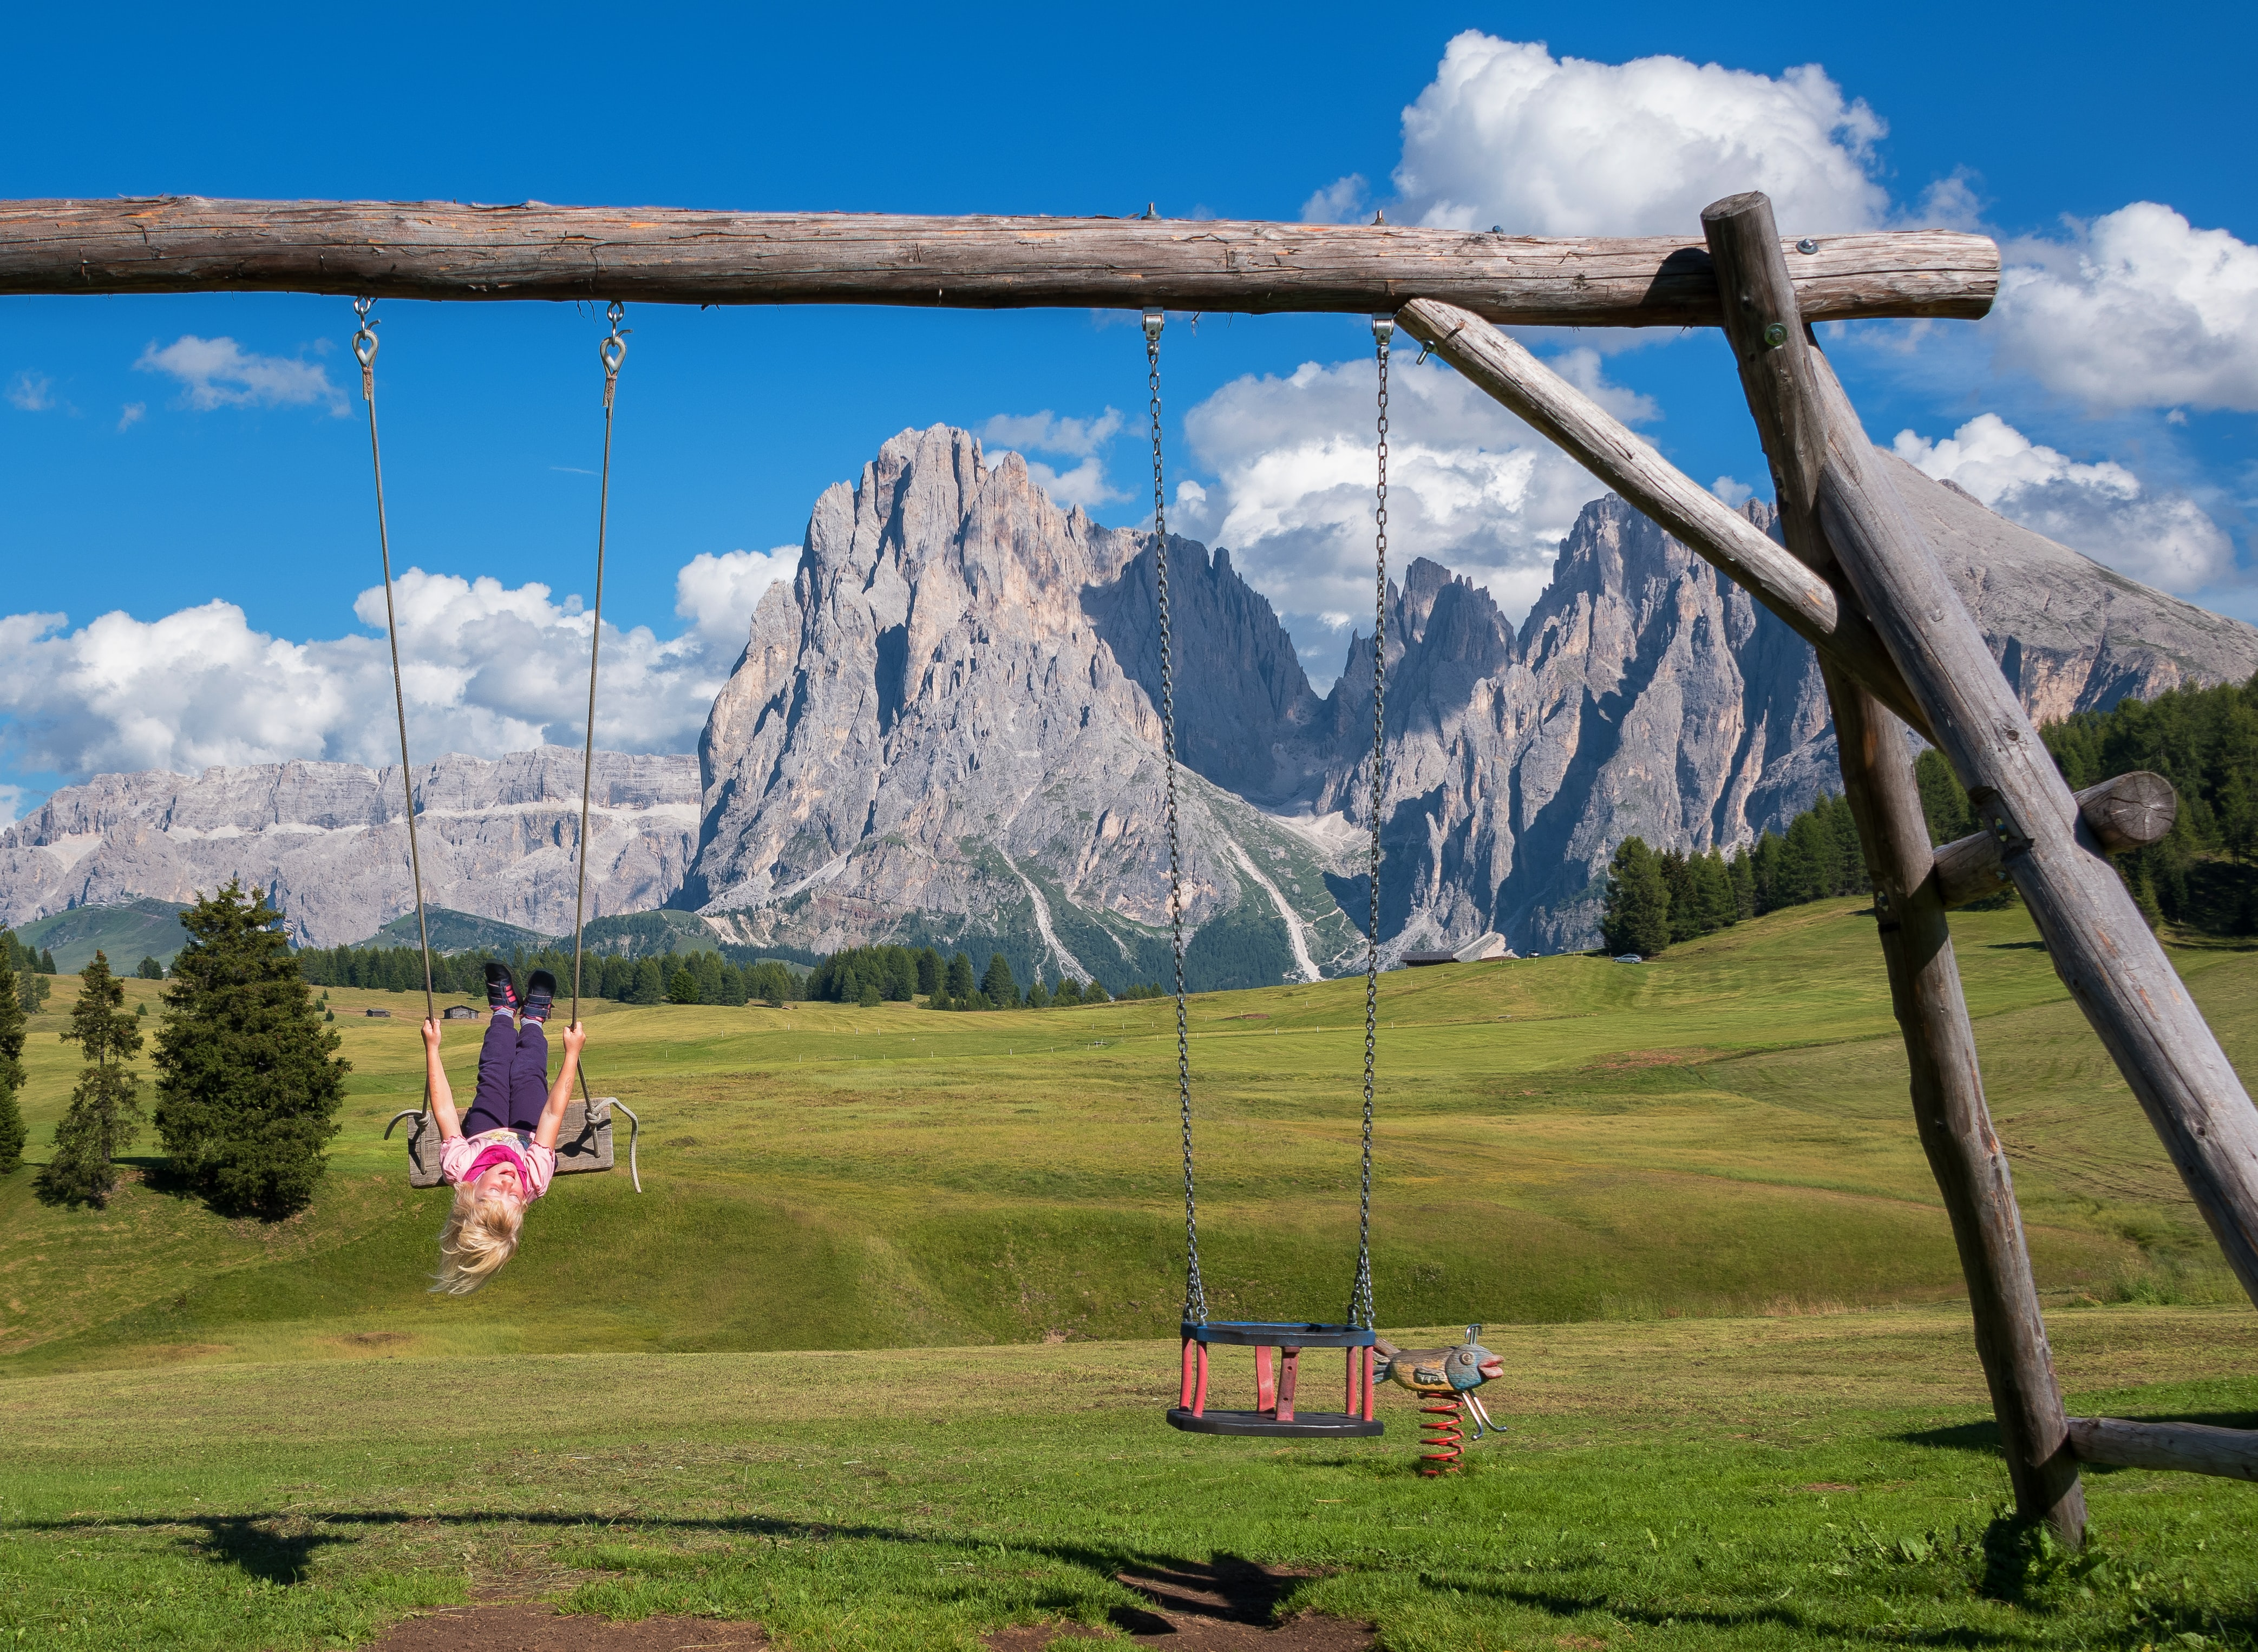 girl riding on swing facing mountain